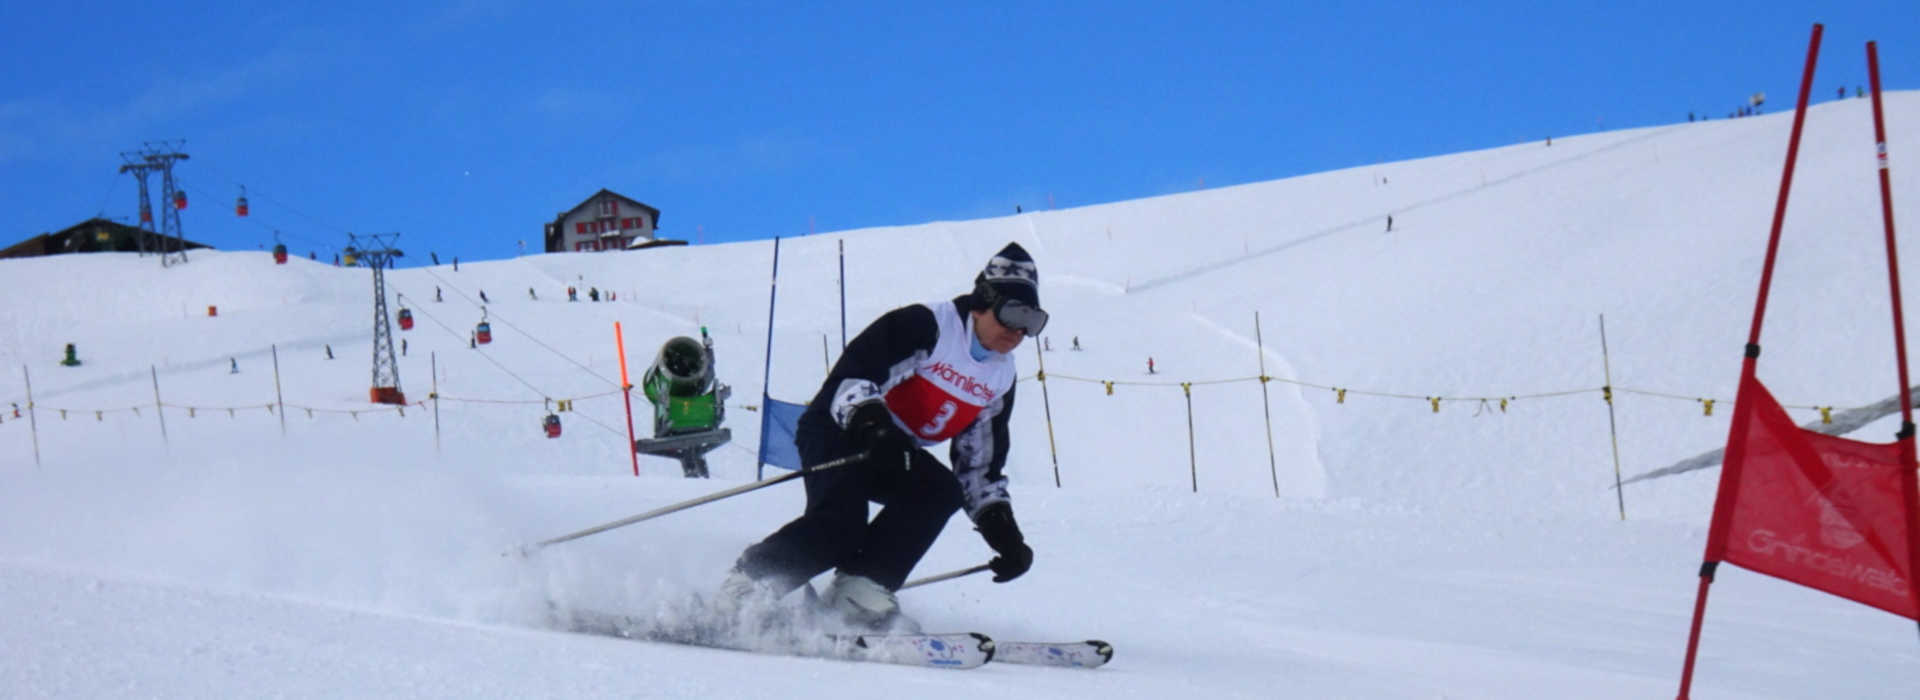 Downhill Only Ski Club - racing picture